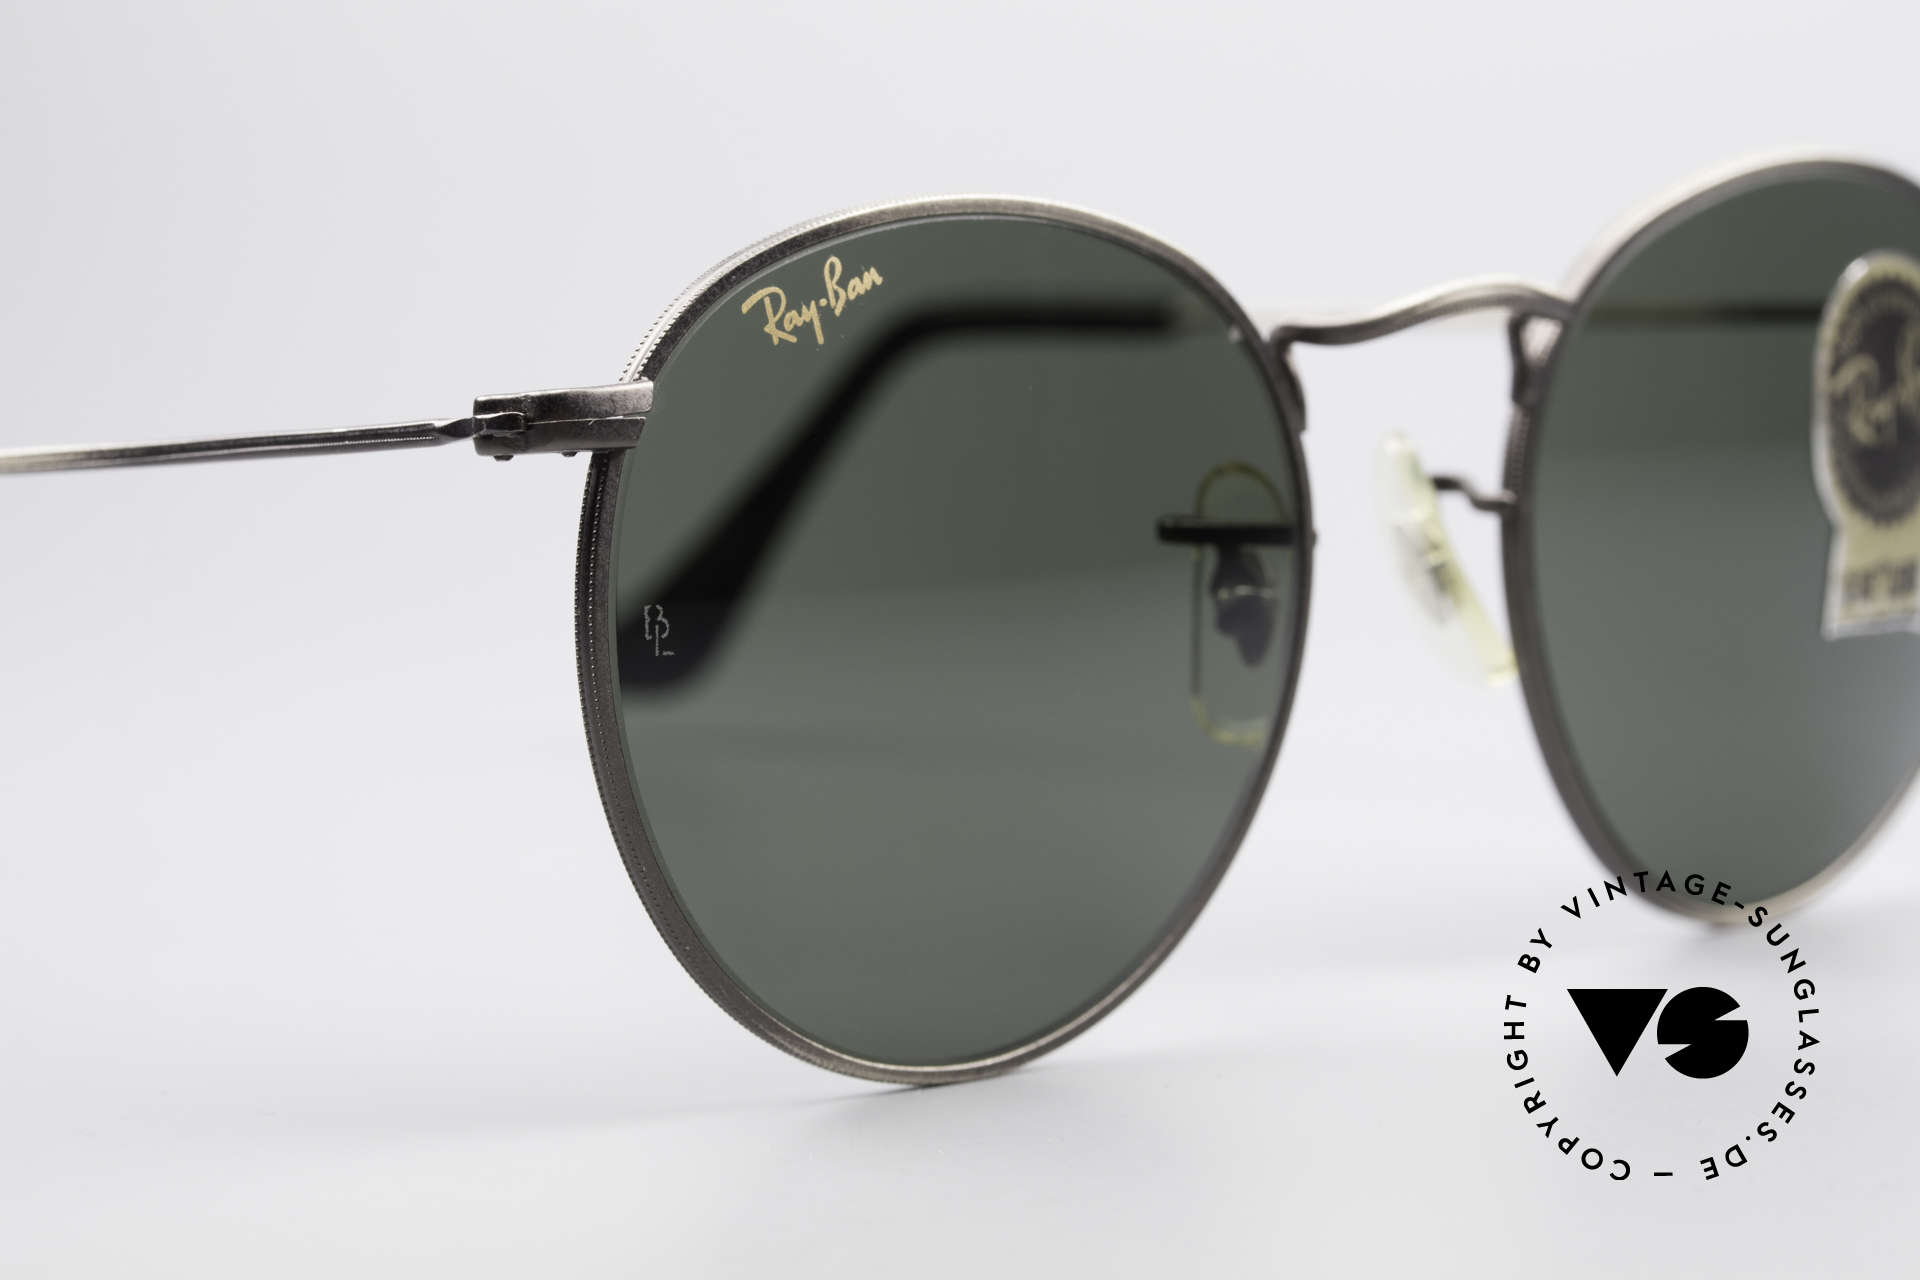 Ray Ban Round Metal 49 Round Vintage Sunglasses USA, unworn Bausch&Lomb sunglasses + an old B&L case, Made for Men and Women